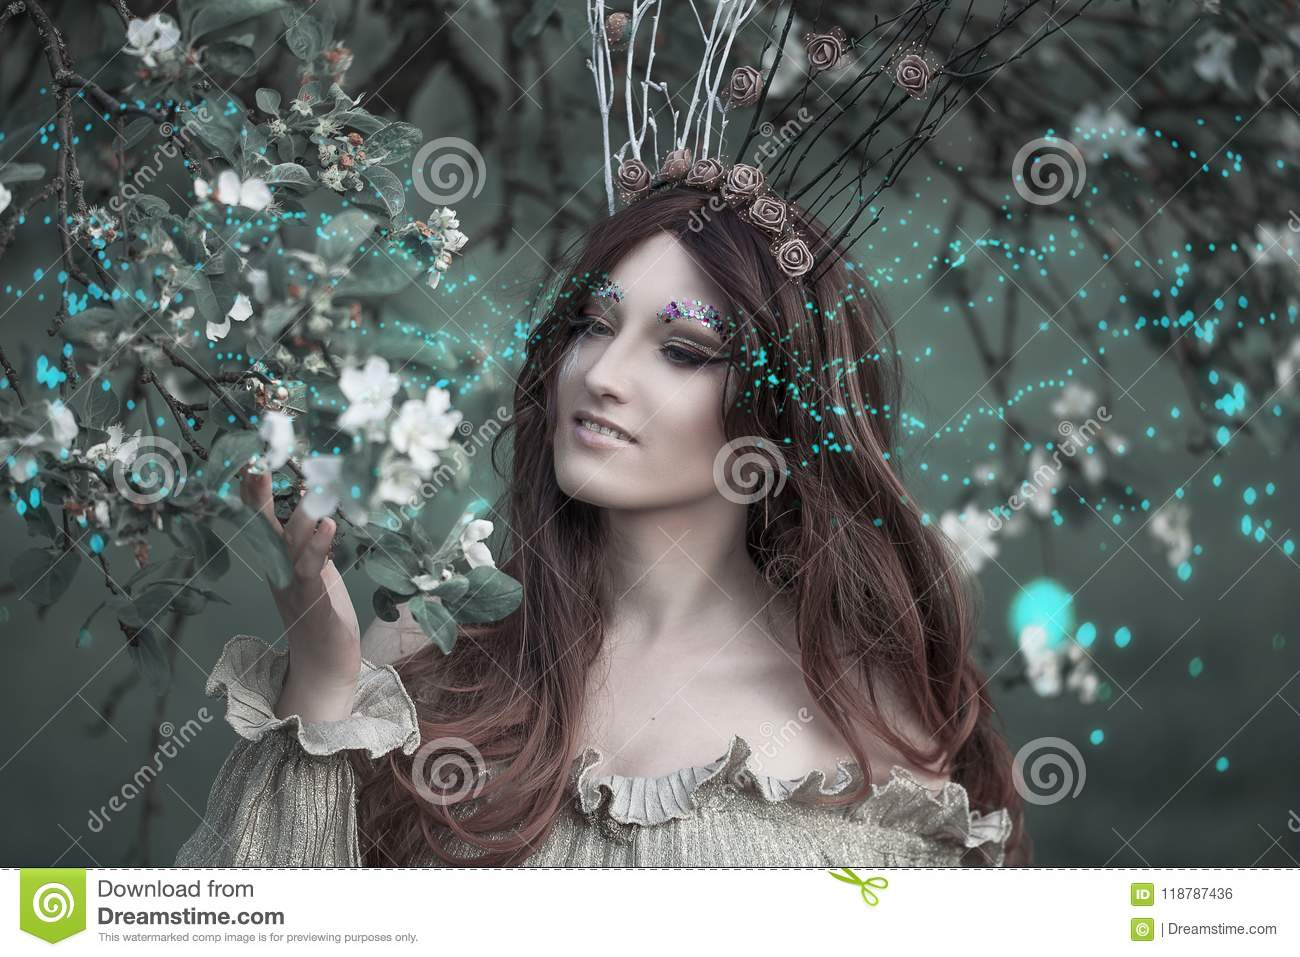 Fairy-tail forest nymph wearing crown, beautiful woman at spring garden, vintage dreamy fashion style